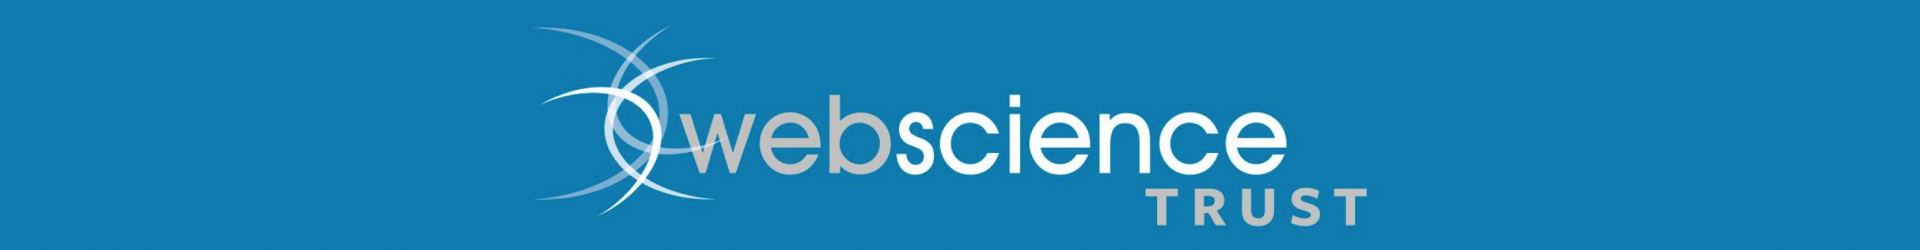 Initial Statements of Interest sought for hosting the 12th or 13th ACM Web Science Conferences (WebSci 2020 and WebSci 2021)